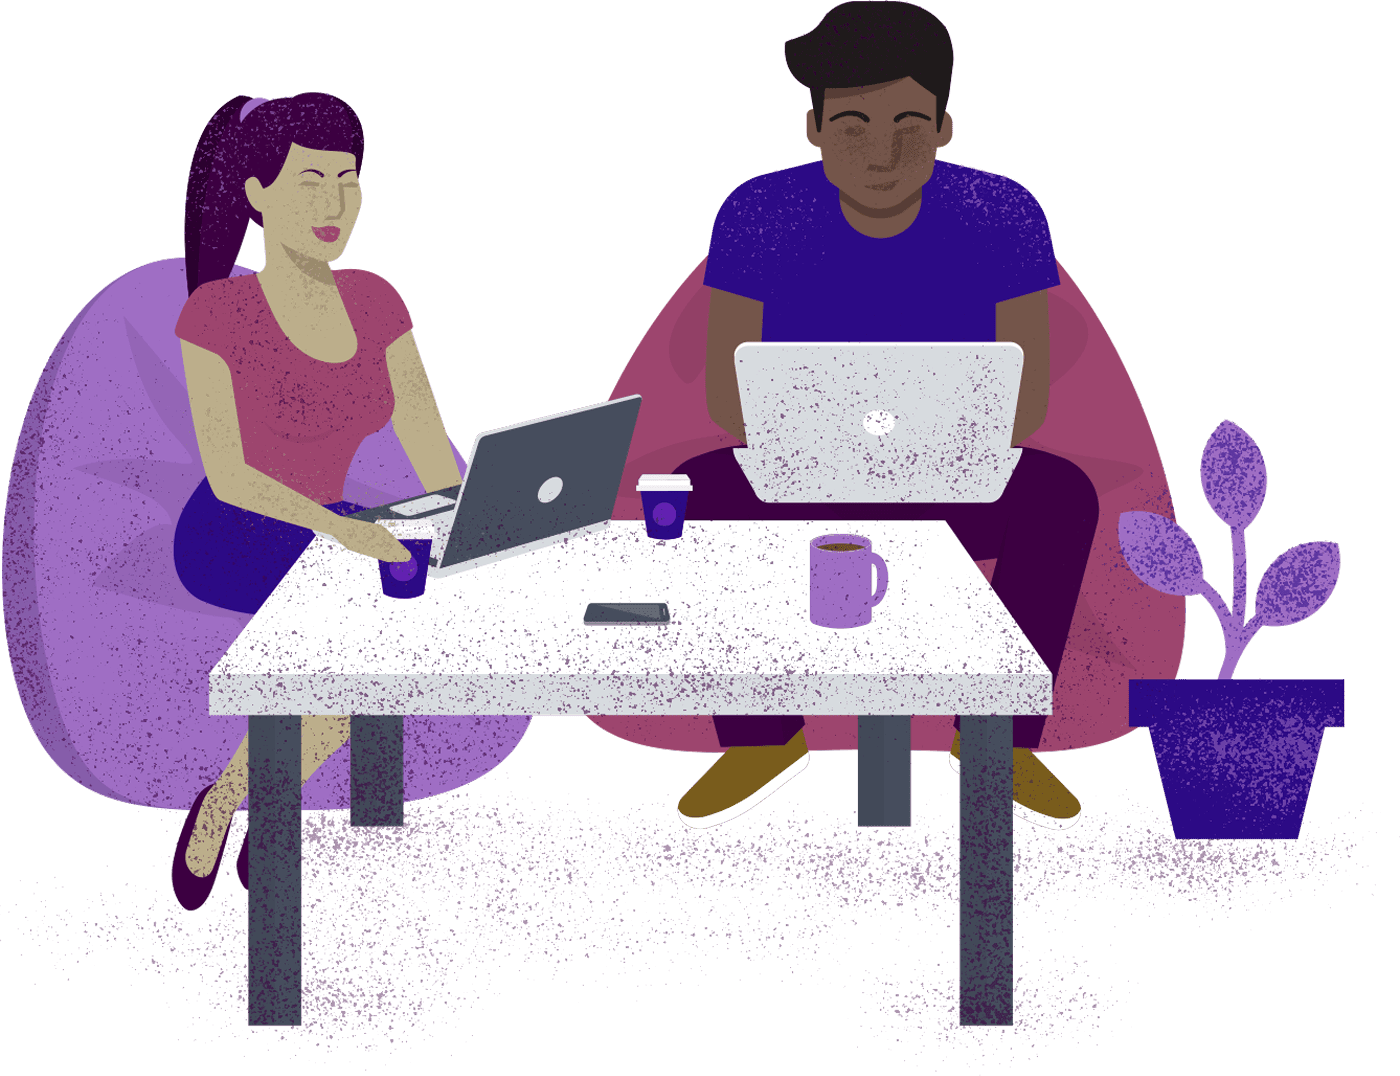 girl-and-guy-at-table-working